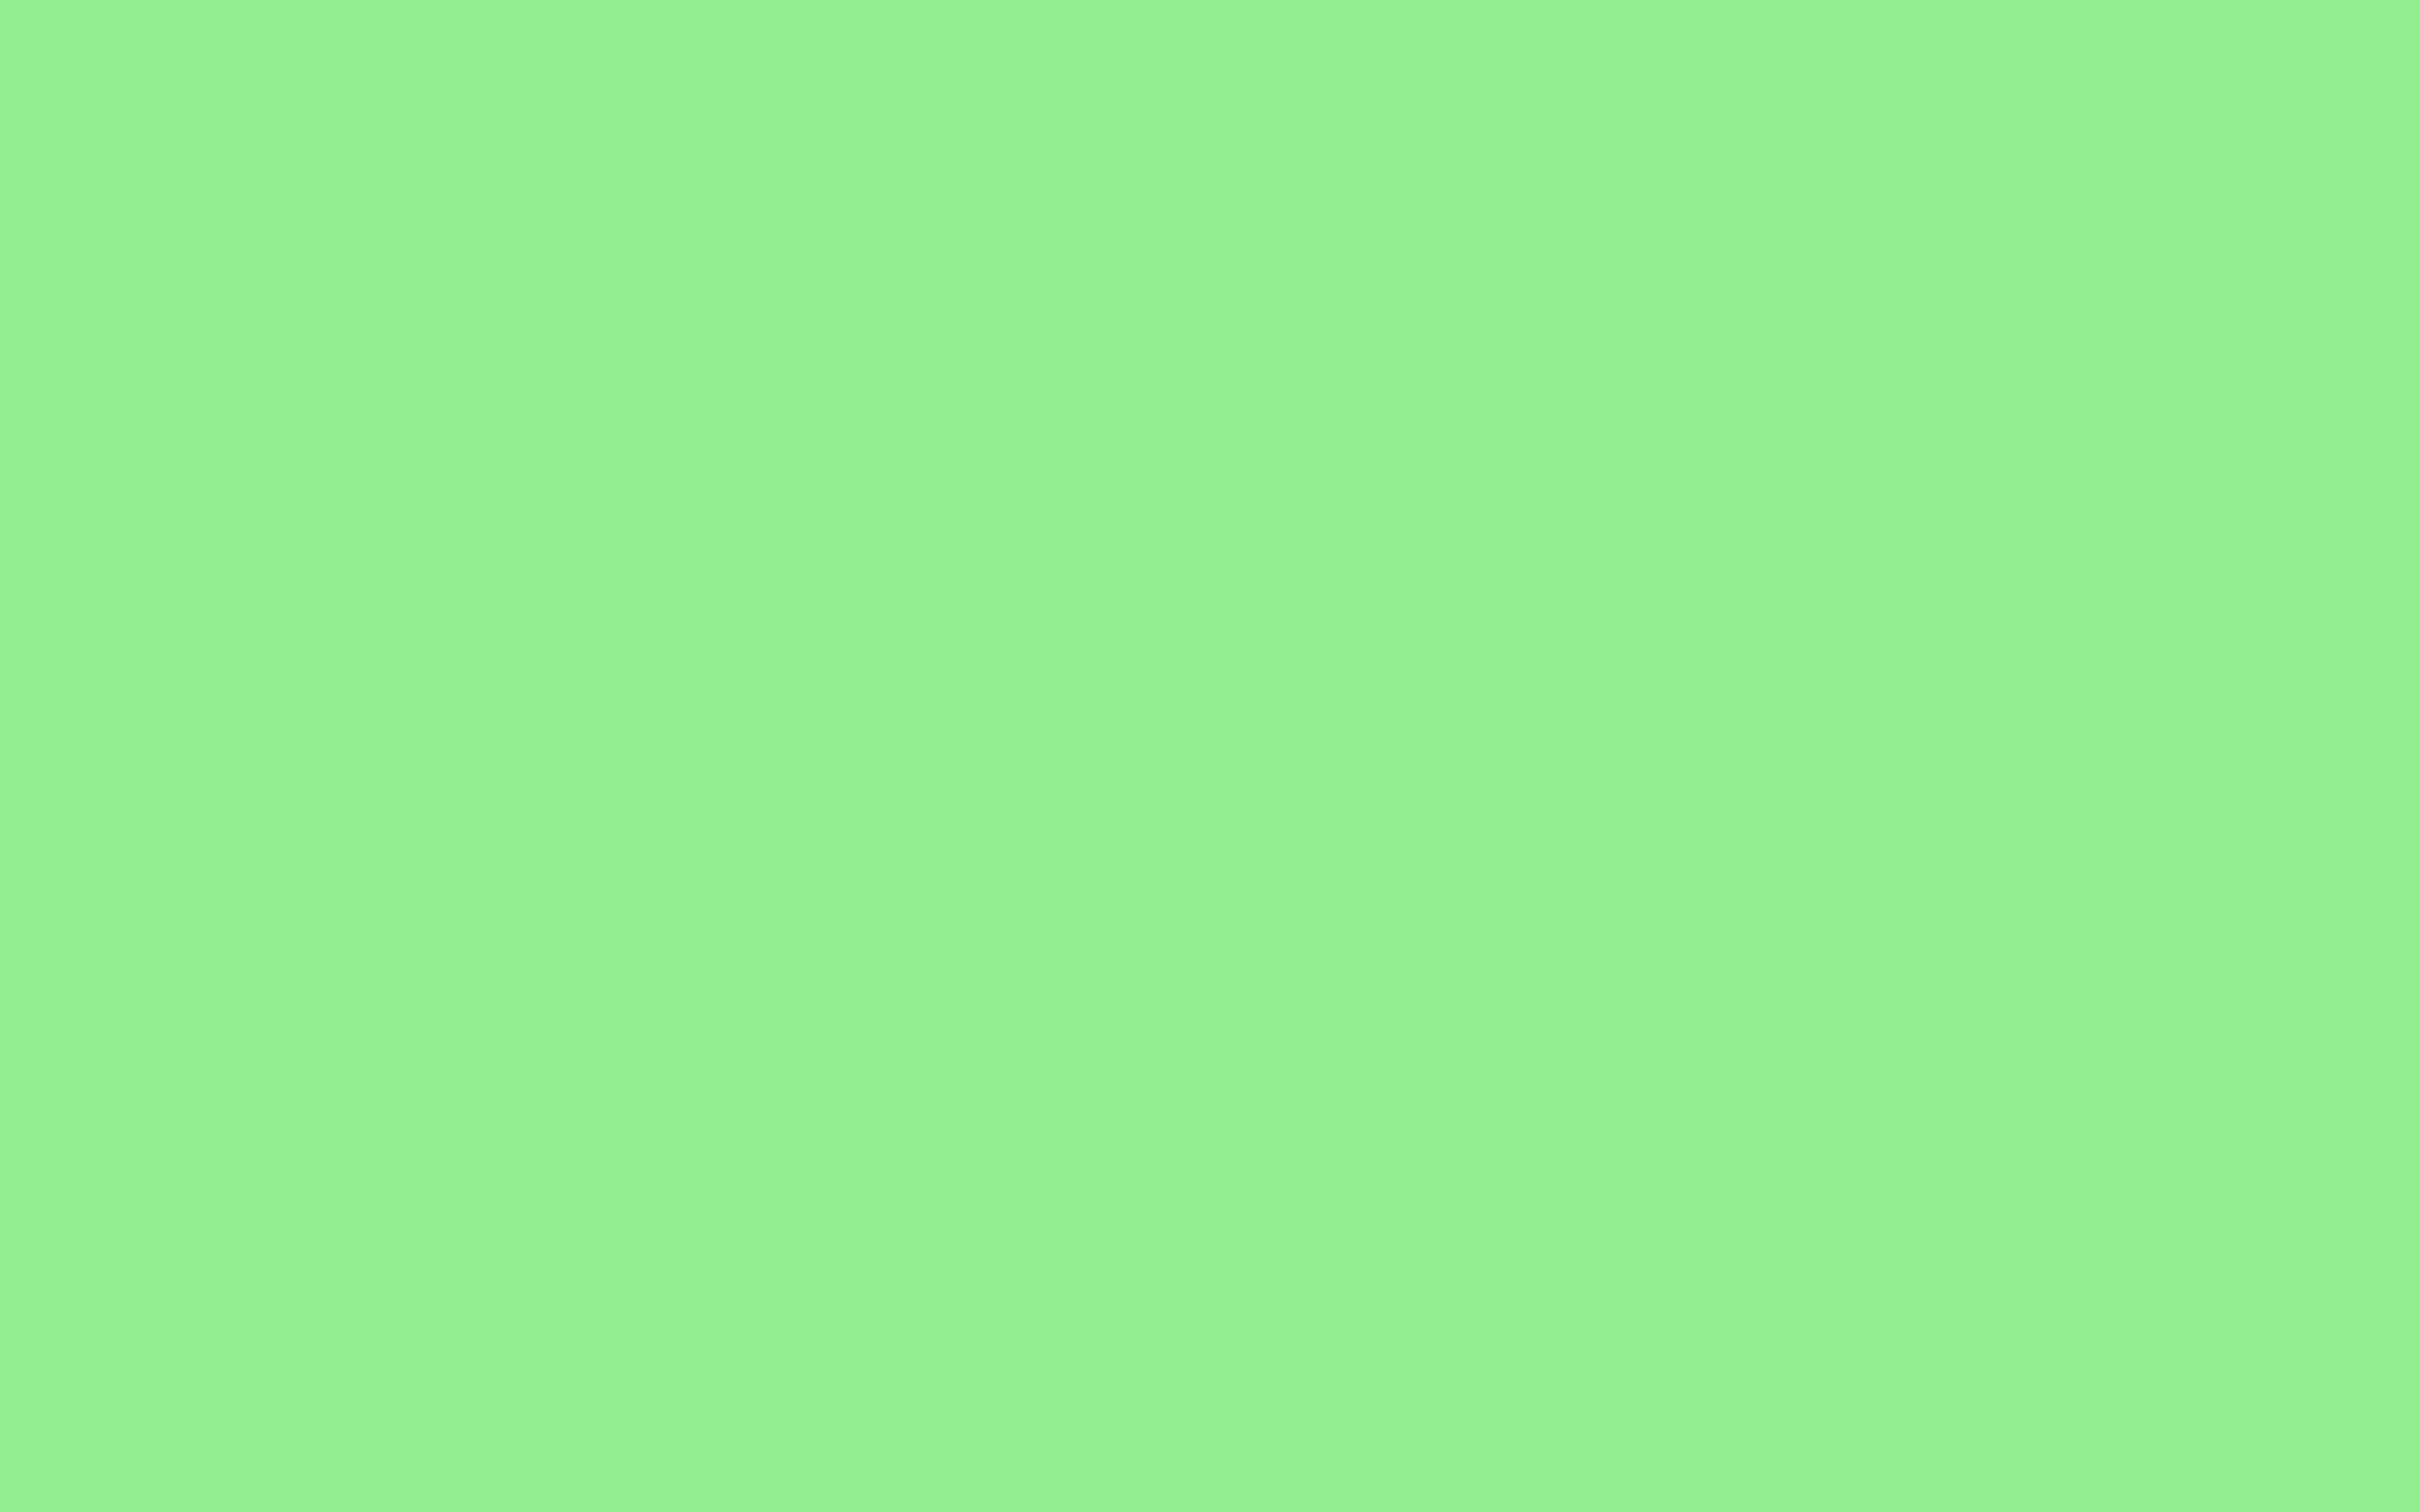 Light Green Color Background Images amp Pictures   Becuo 2880x1800